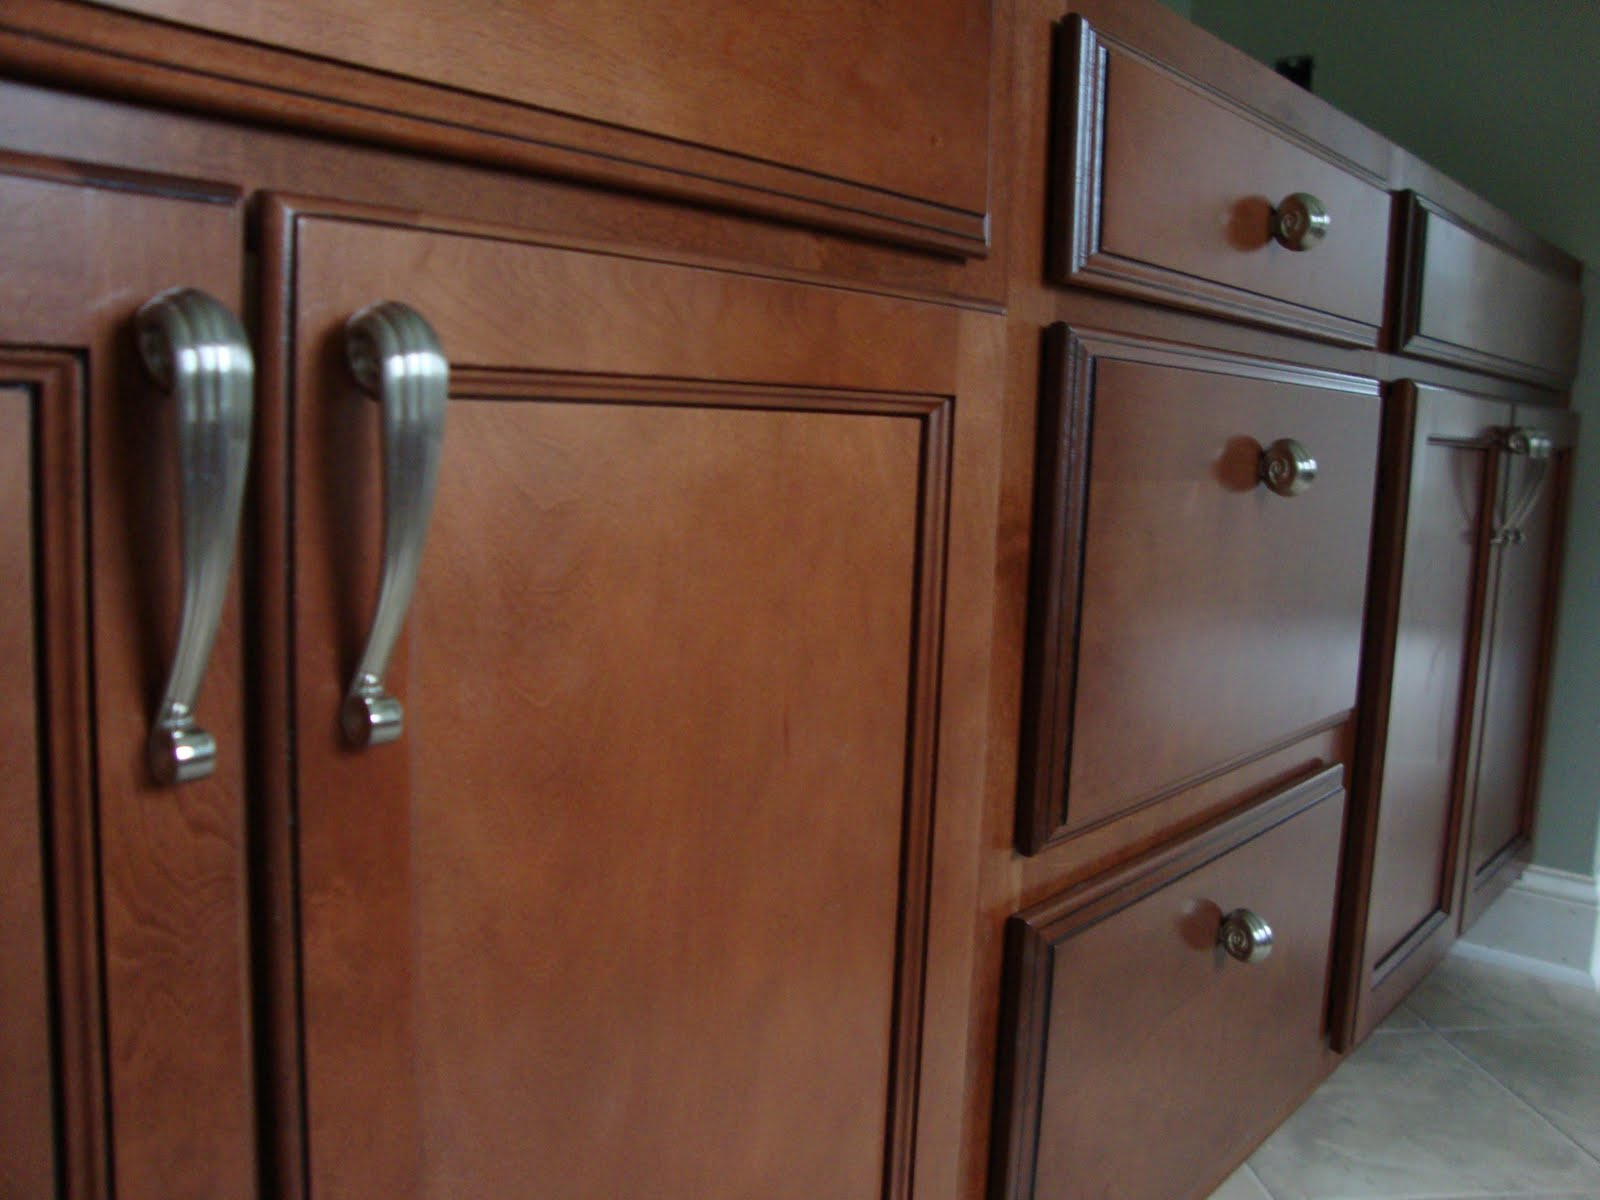 Home Building Project: Tile, Paint, and Cabinets